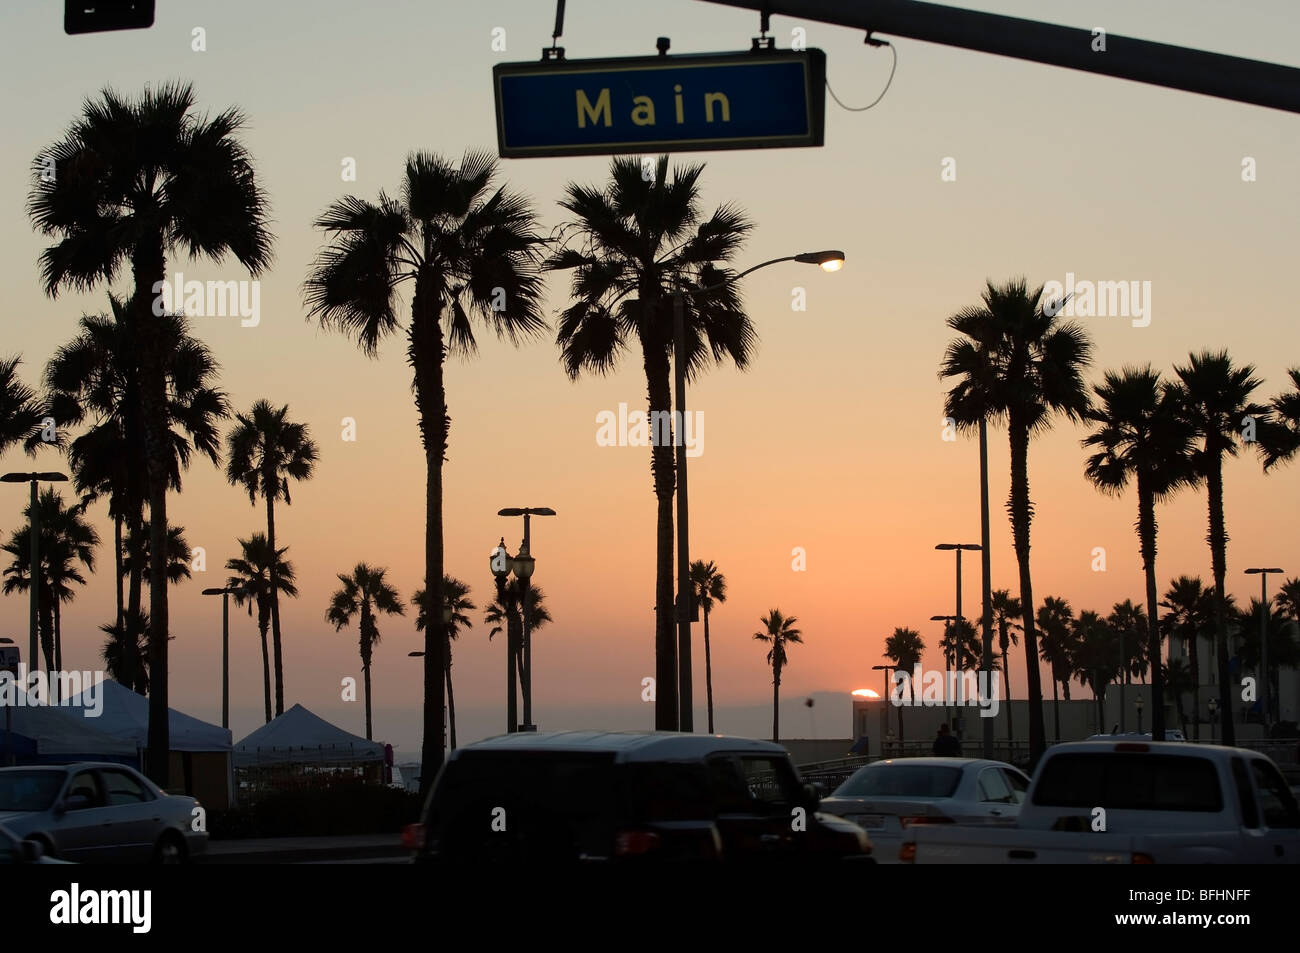 Main Street Huntington Beach At Sunset Showing Palm Trees In This Southern California Scene